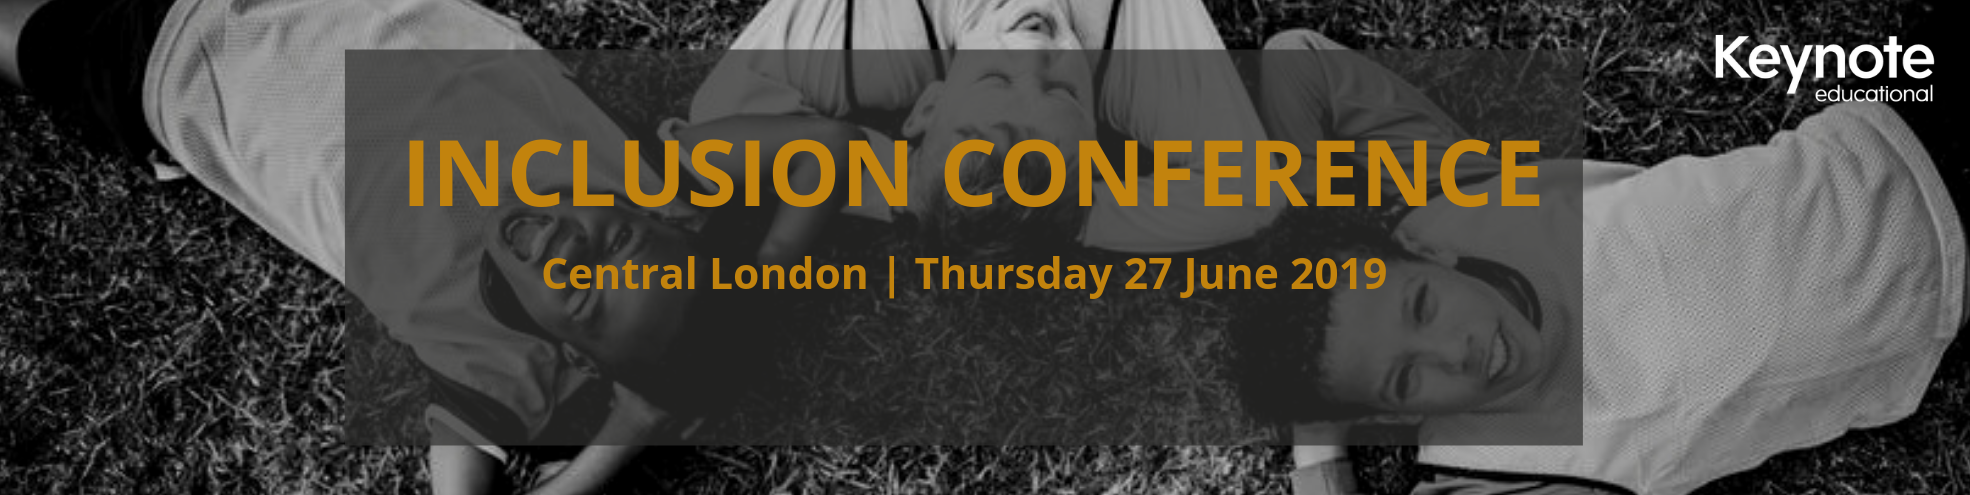 Inclusion Conference